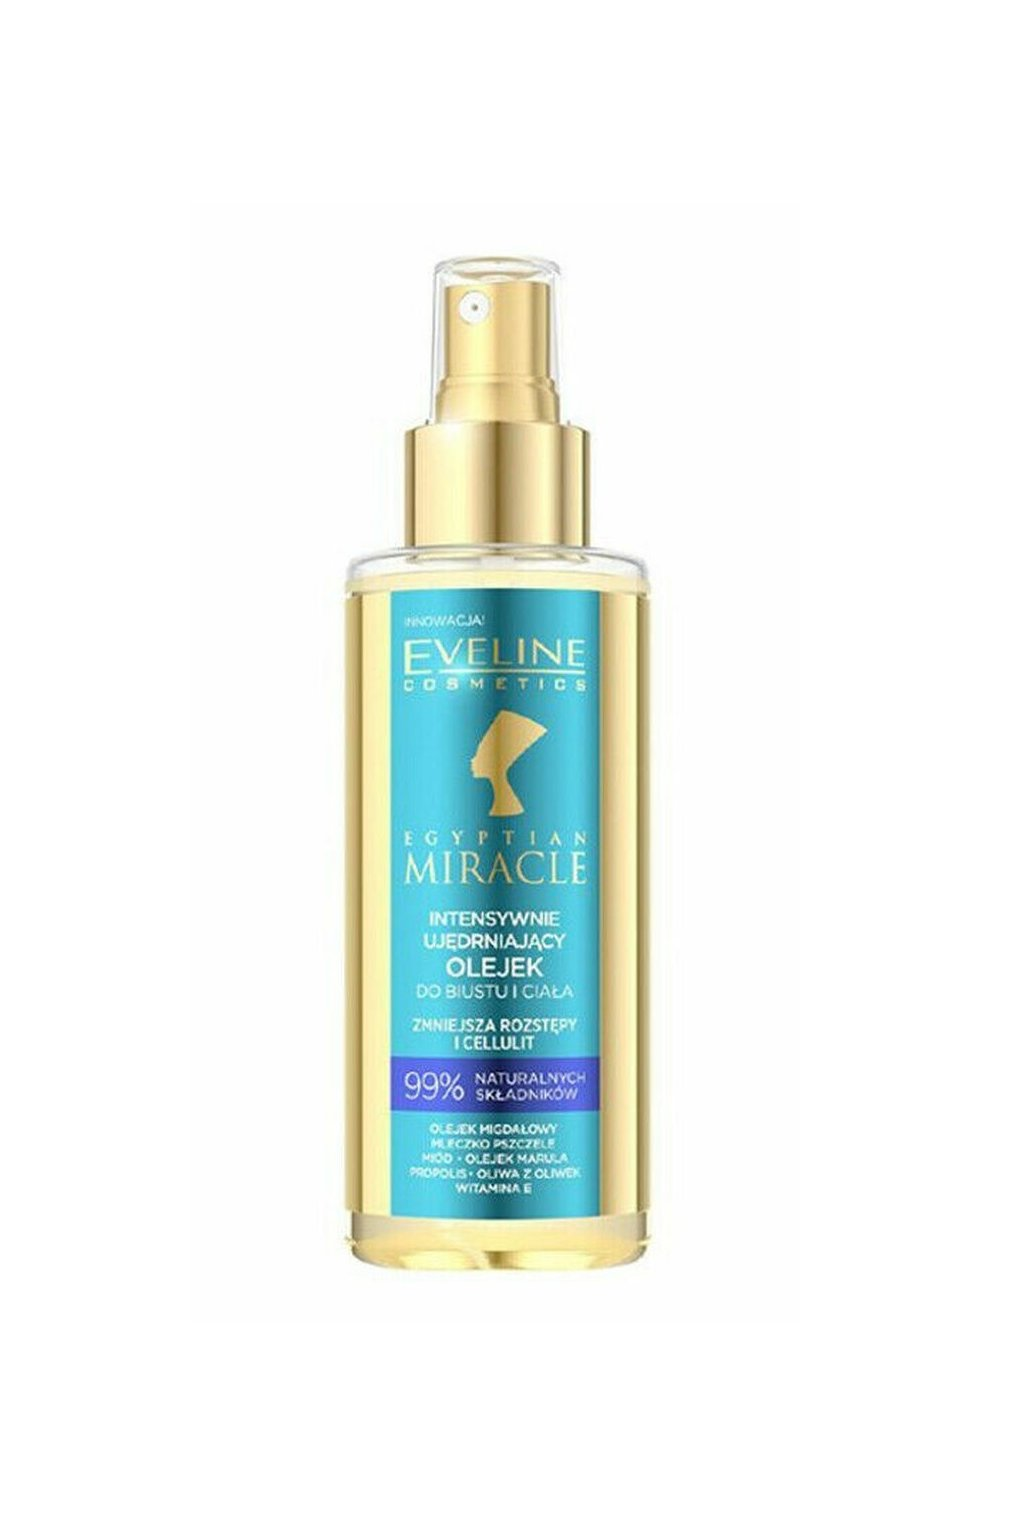 eveline egyptian miracle burst and body oil 150ml